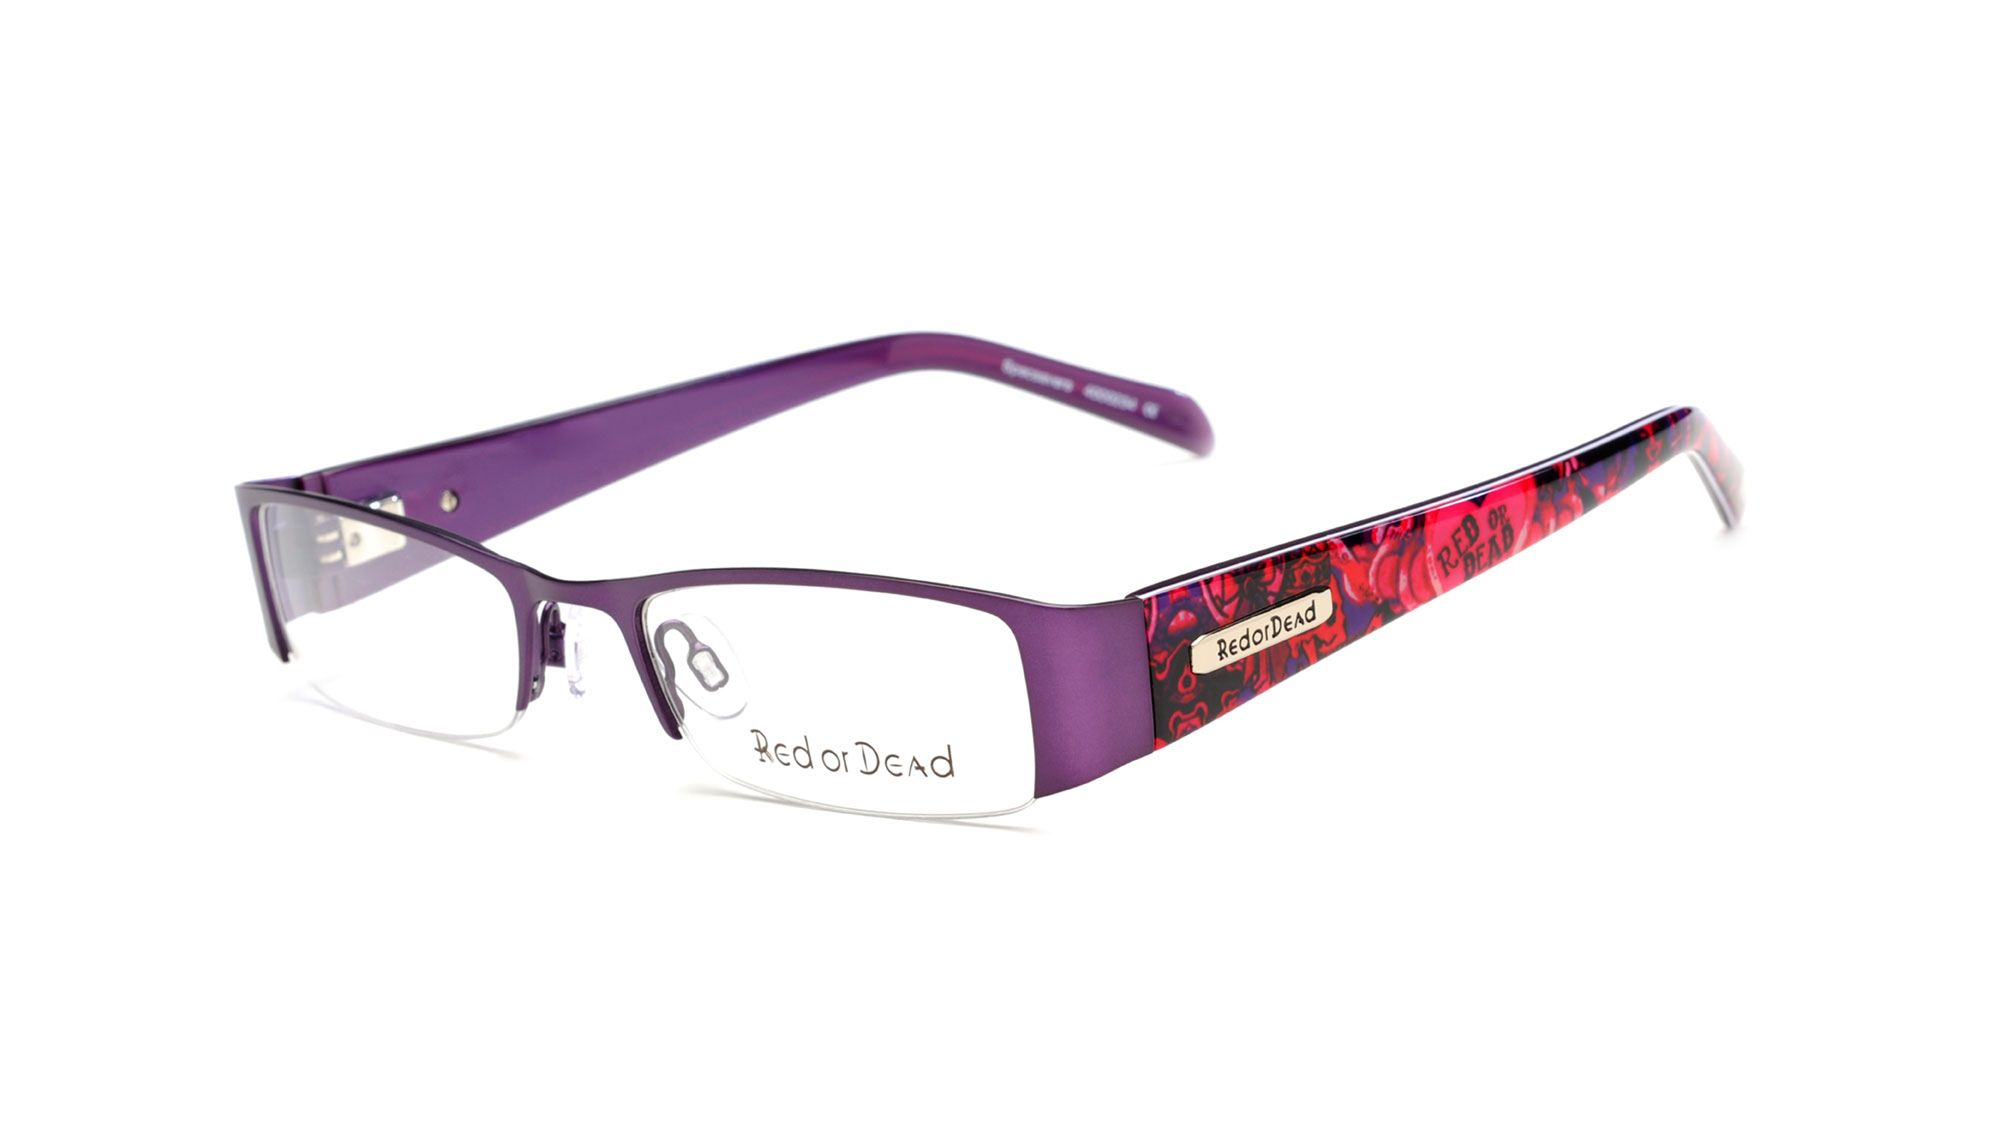 56854508c03c RED OR DEAD 48 Glasses by Red or Dead